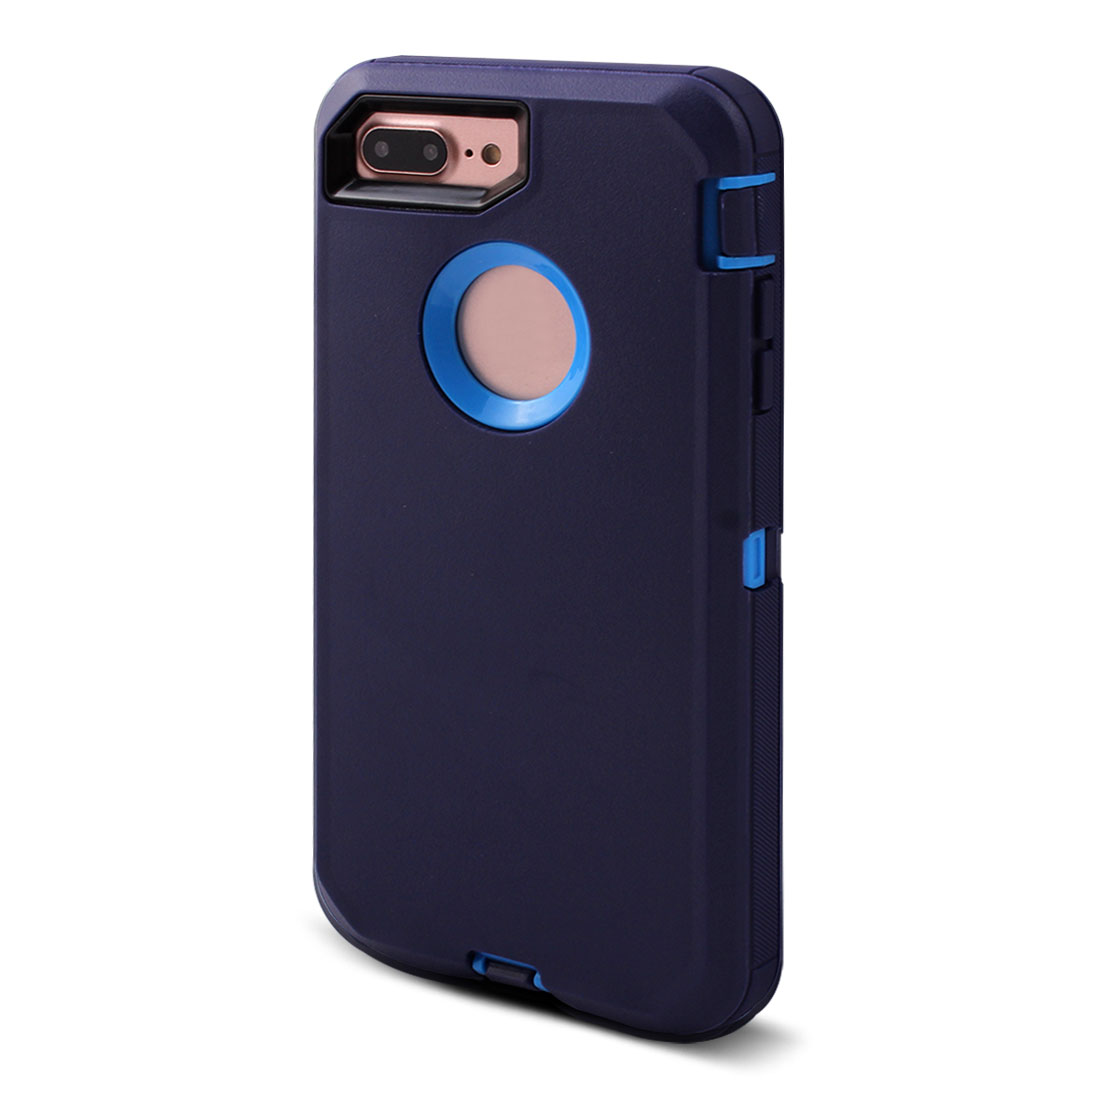 TPU 360 Degree Rotary Belt Clip Anti-Dust Shell Phone Case Navy Blue for iPhone 7 Plus